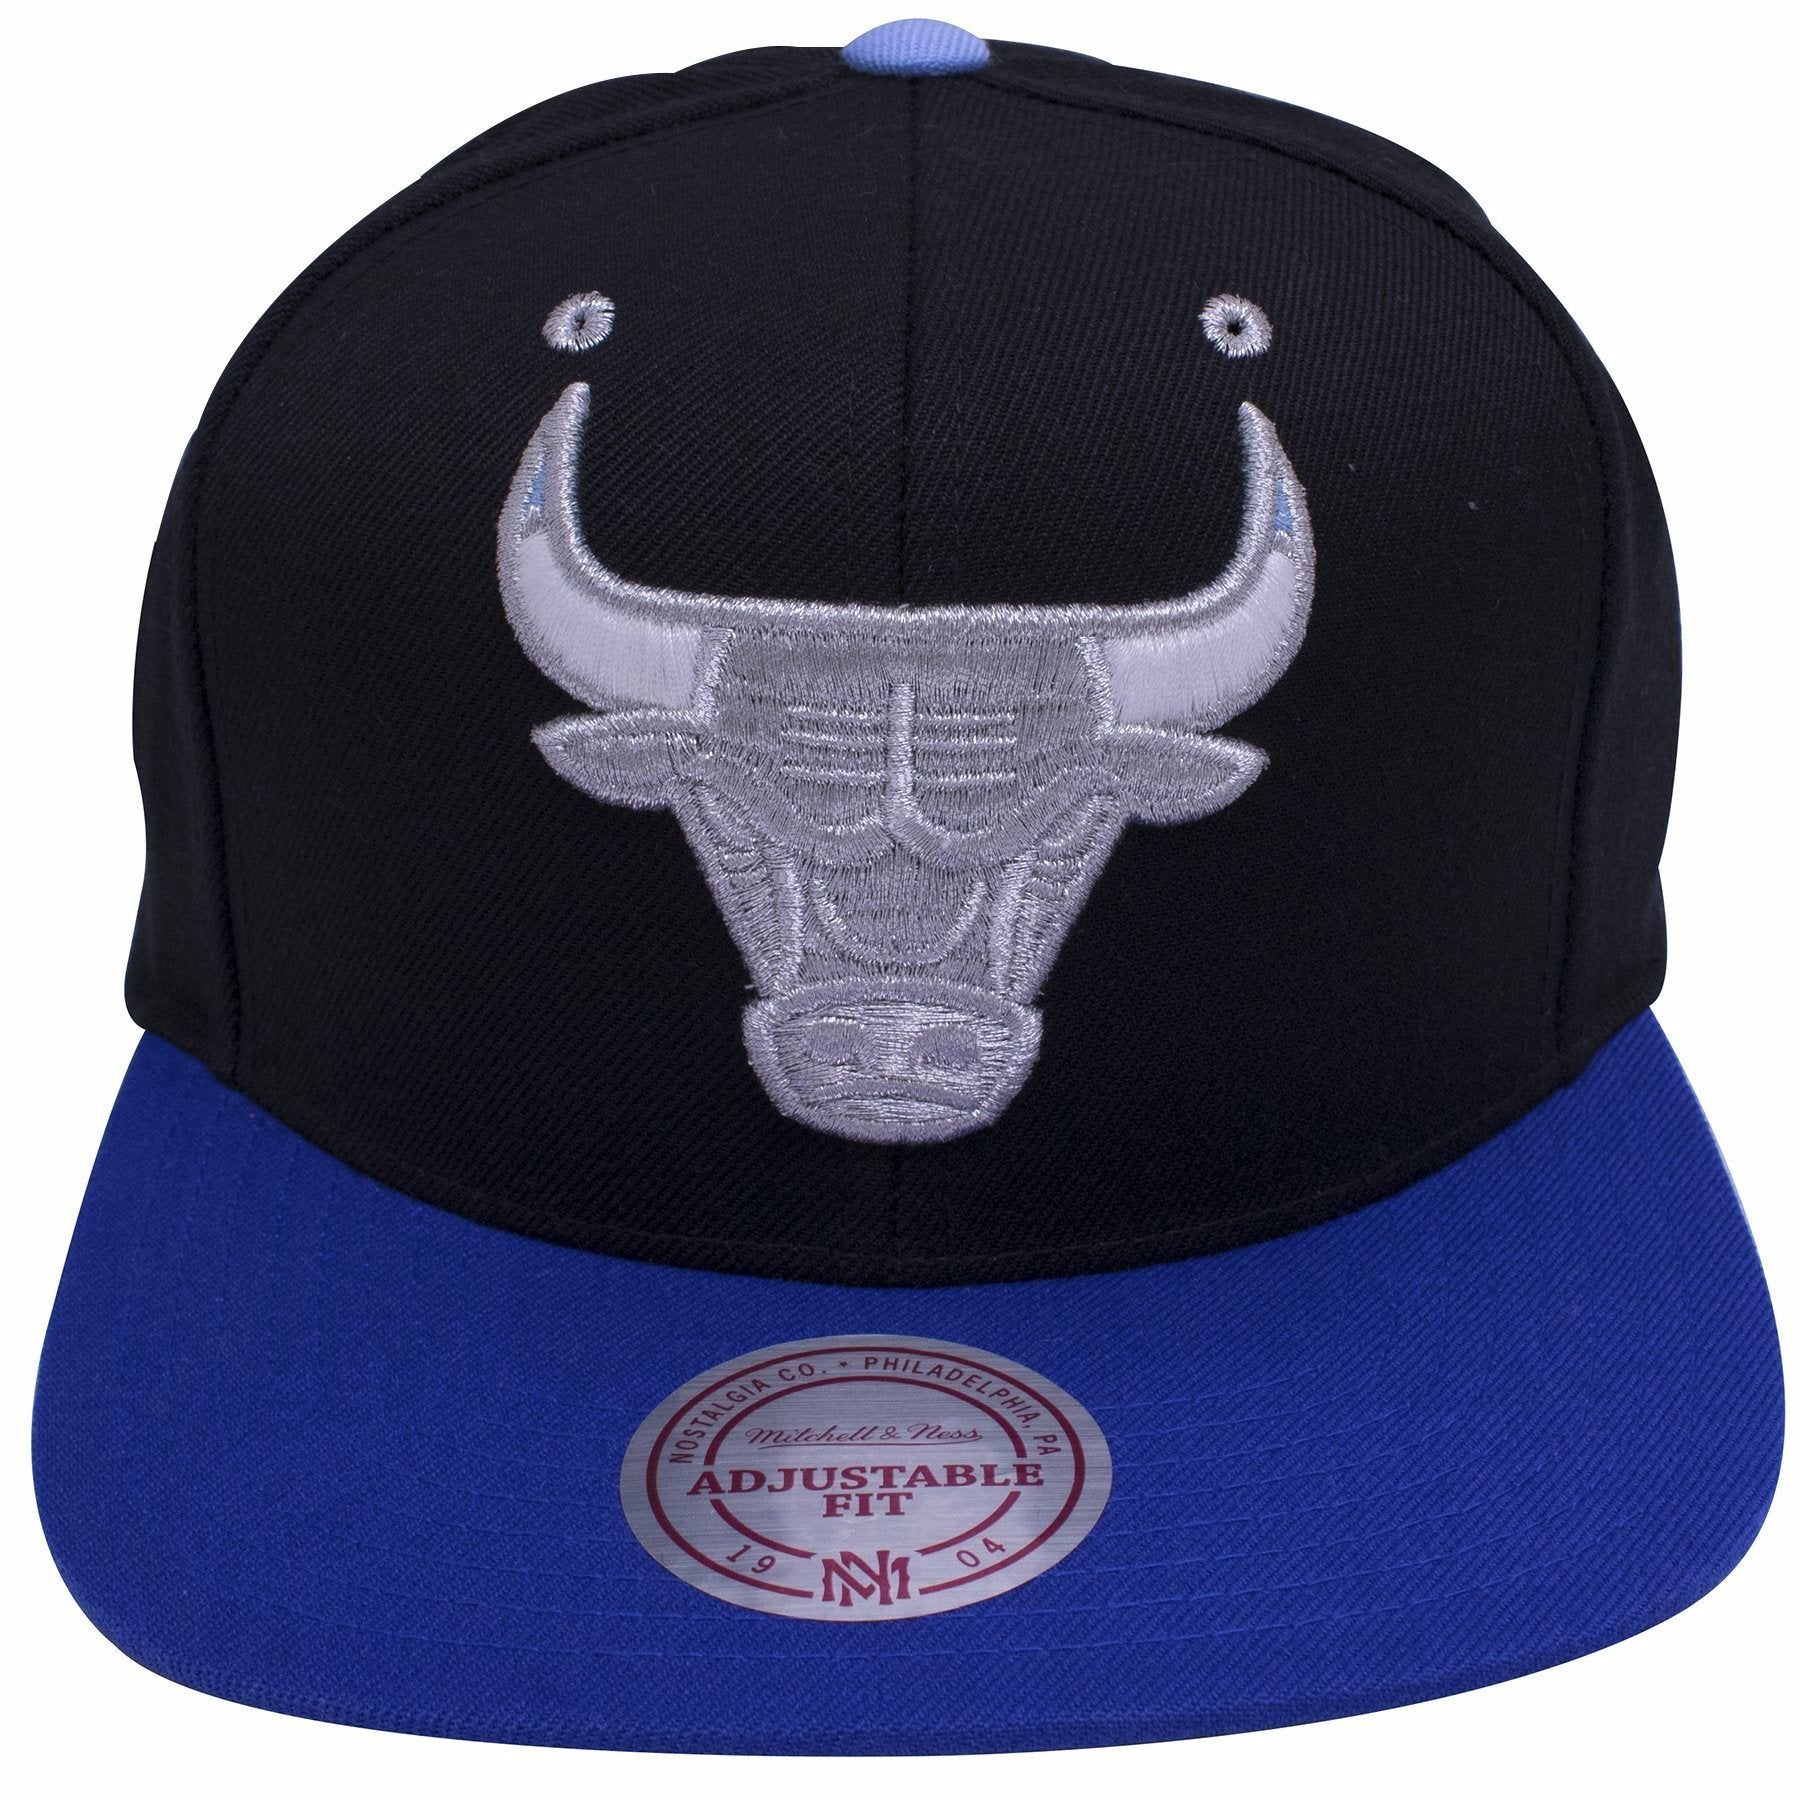 7f2e11c2a23 the chicago bulls sneaker matching air jordan 4 alternate motorsport  sneaker matching snapback hat has a